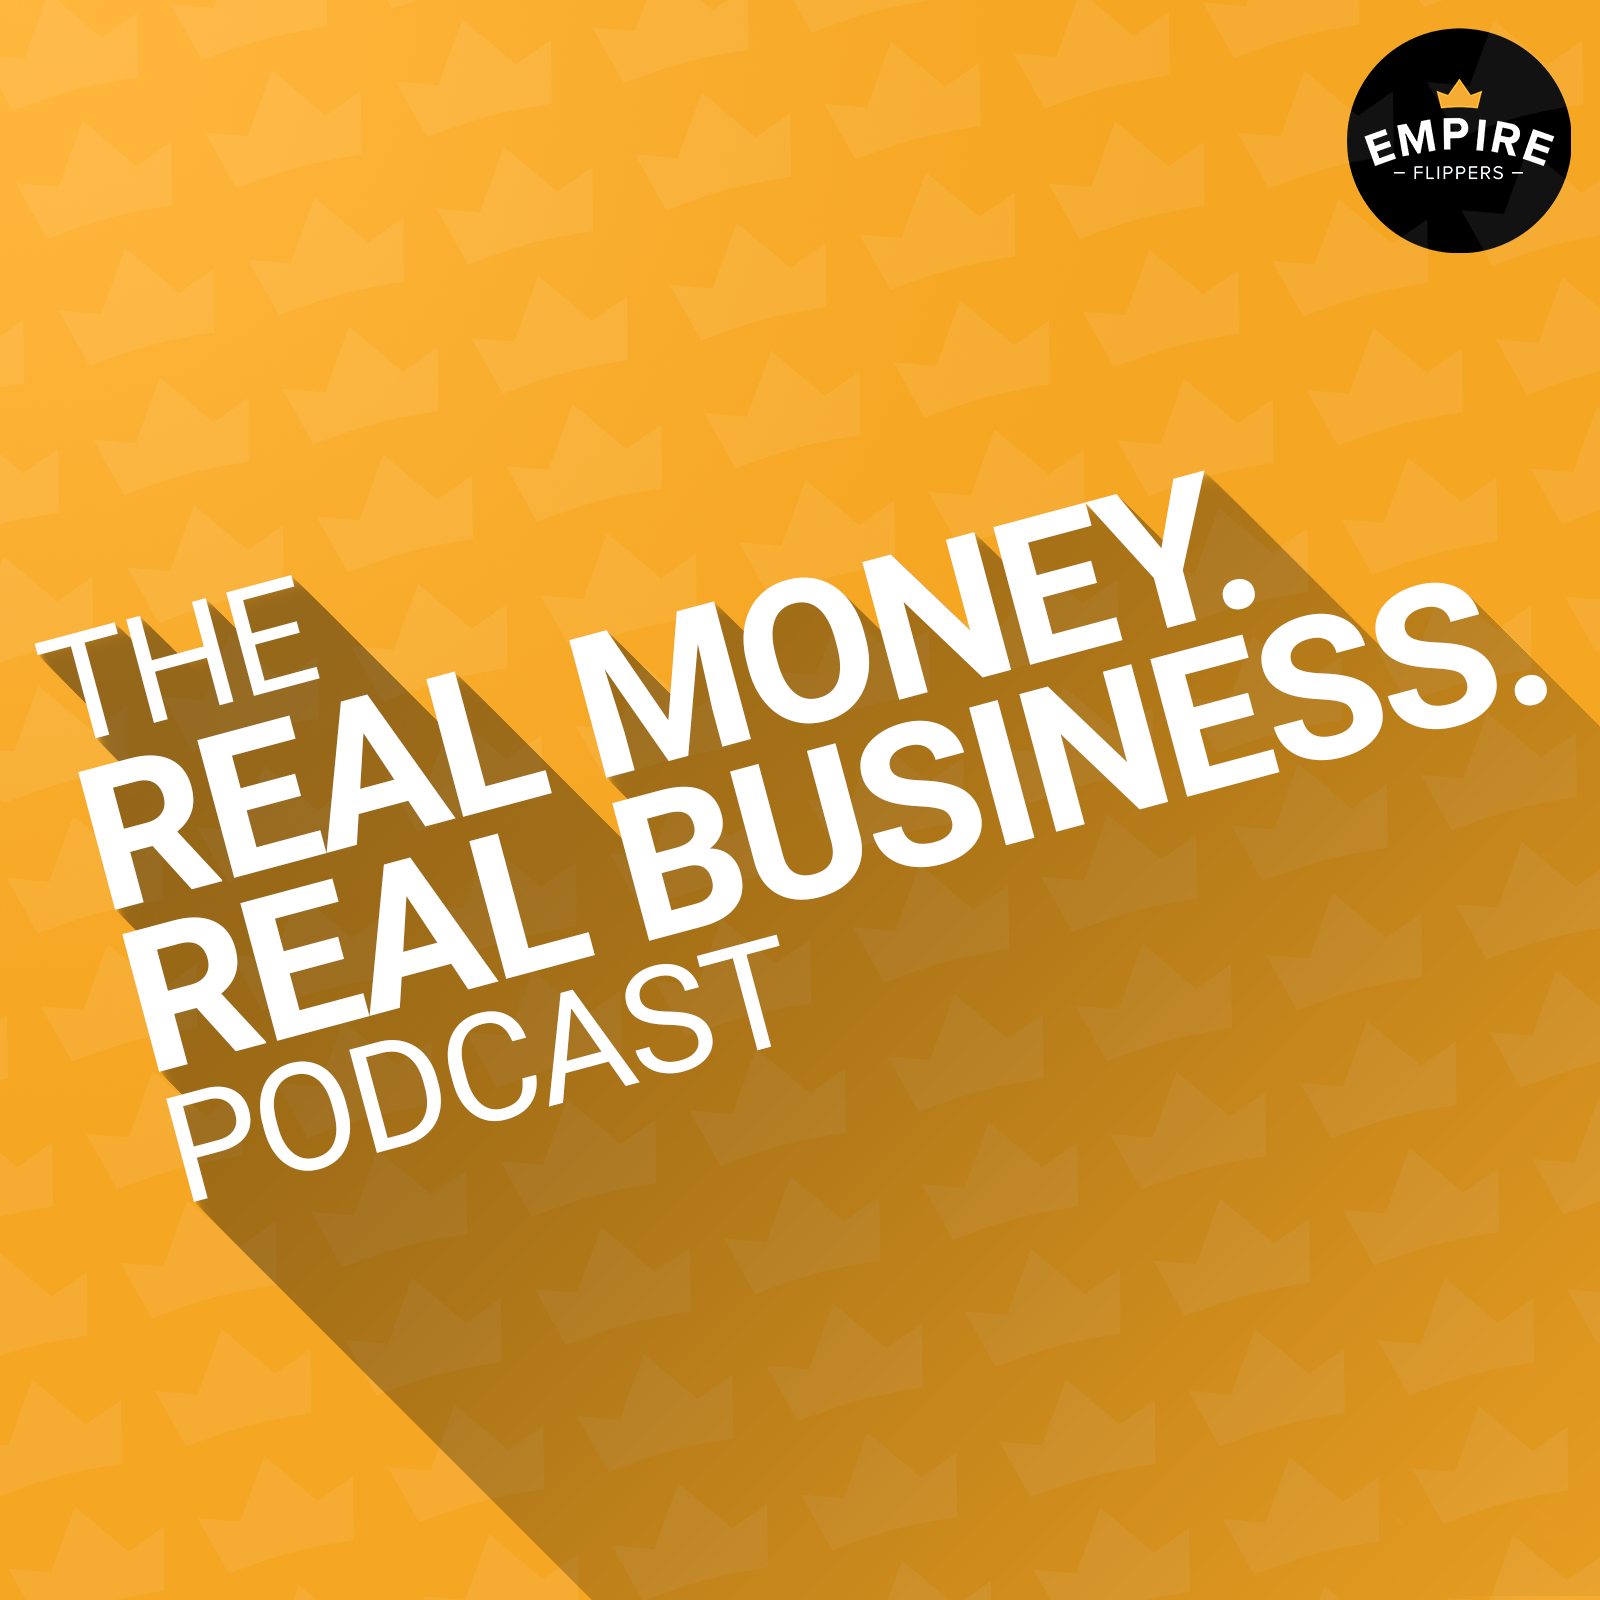 RMRB 305 - Crushing Social Media as a Traffic Channel to Build a 6-Figure Advertising Business